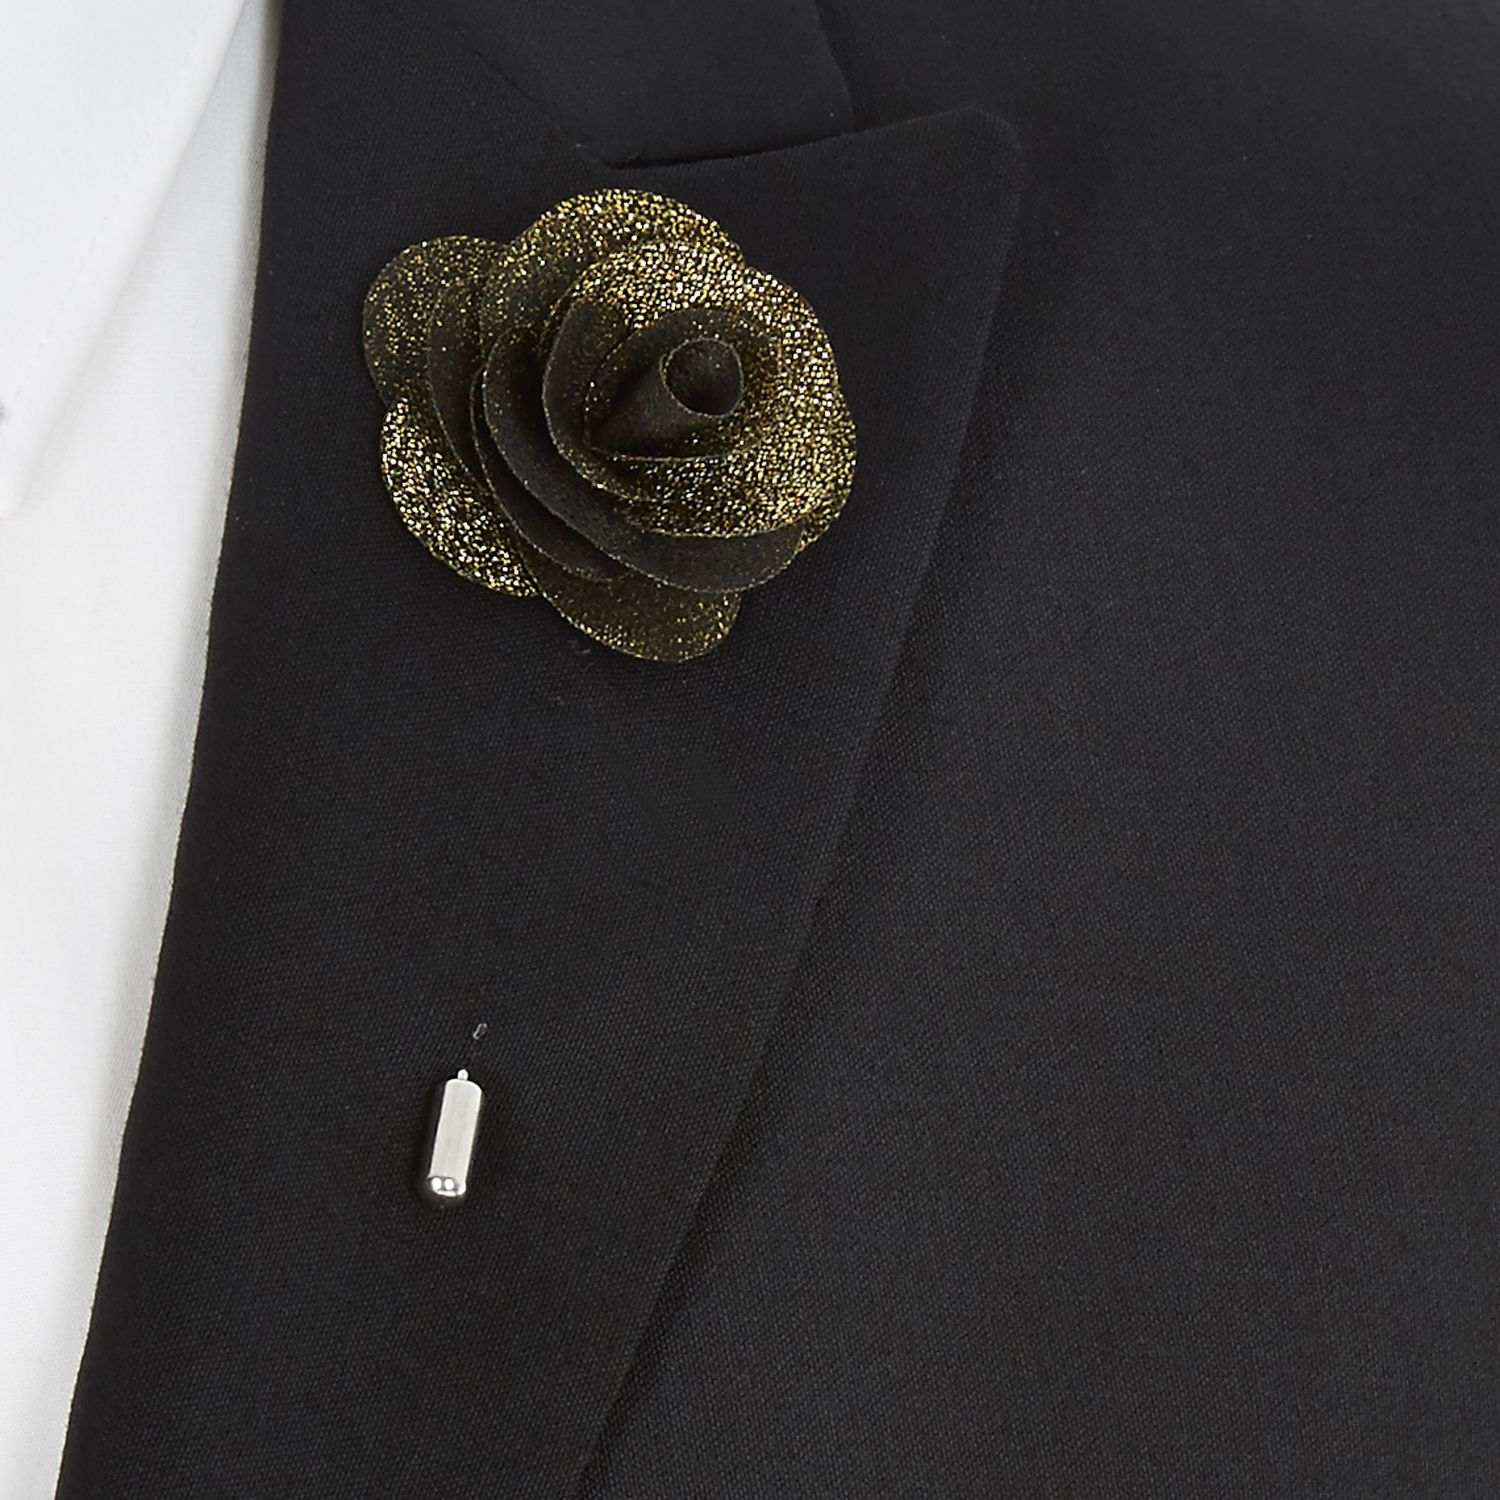 River Island Gold Texture Pattern Tie Gold Flower Lapel Pin